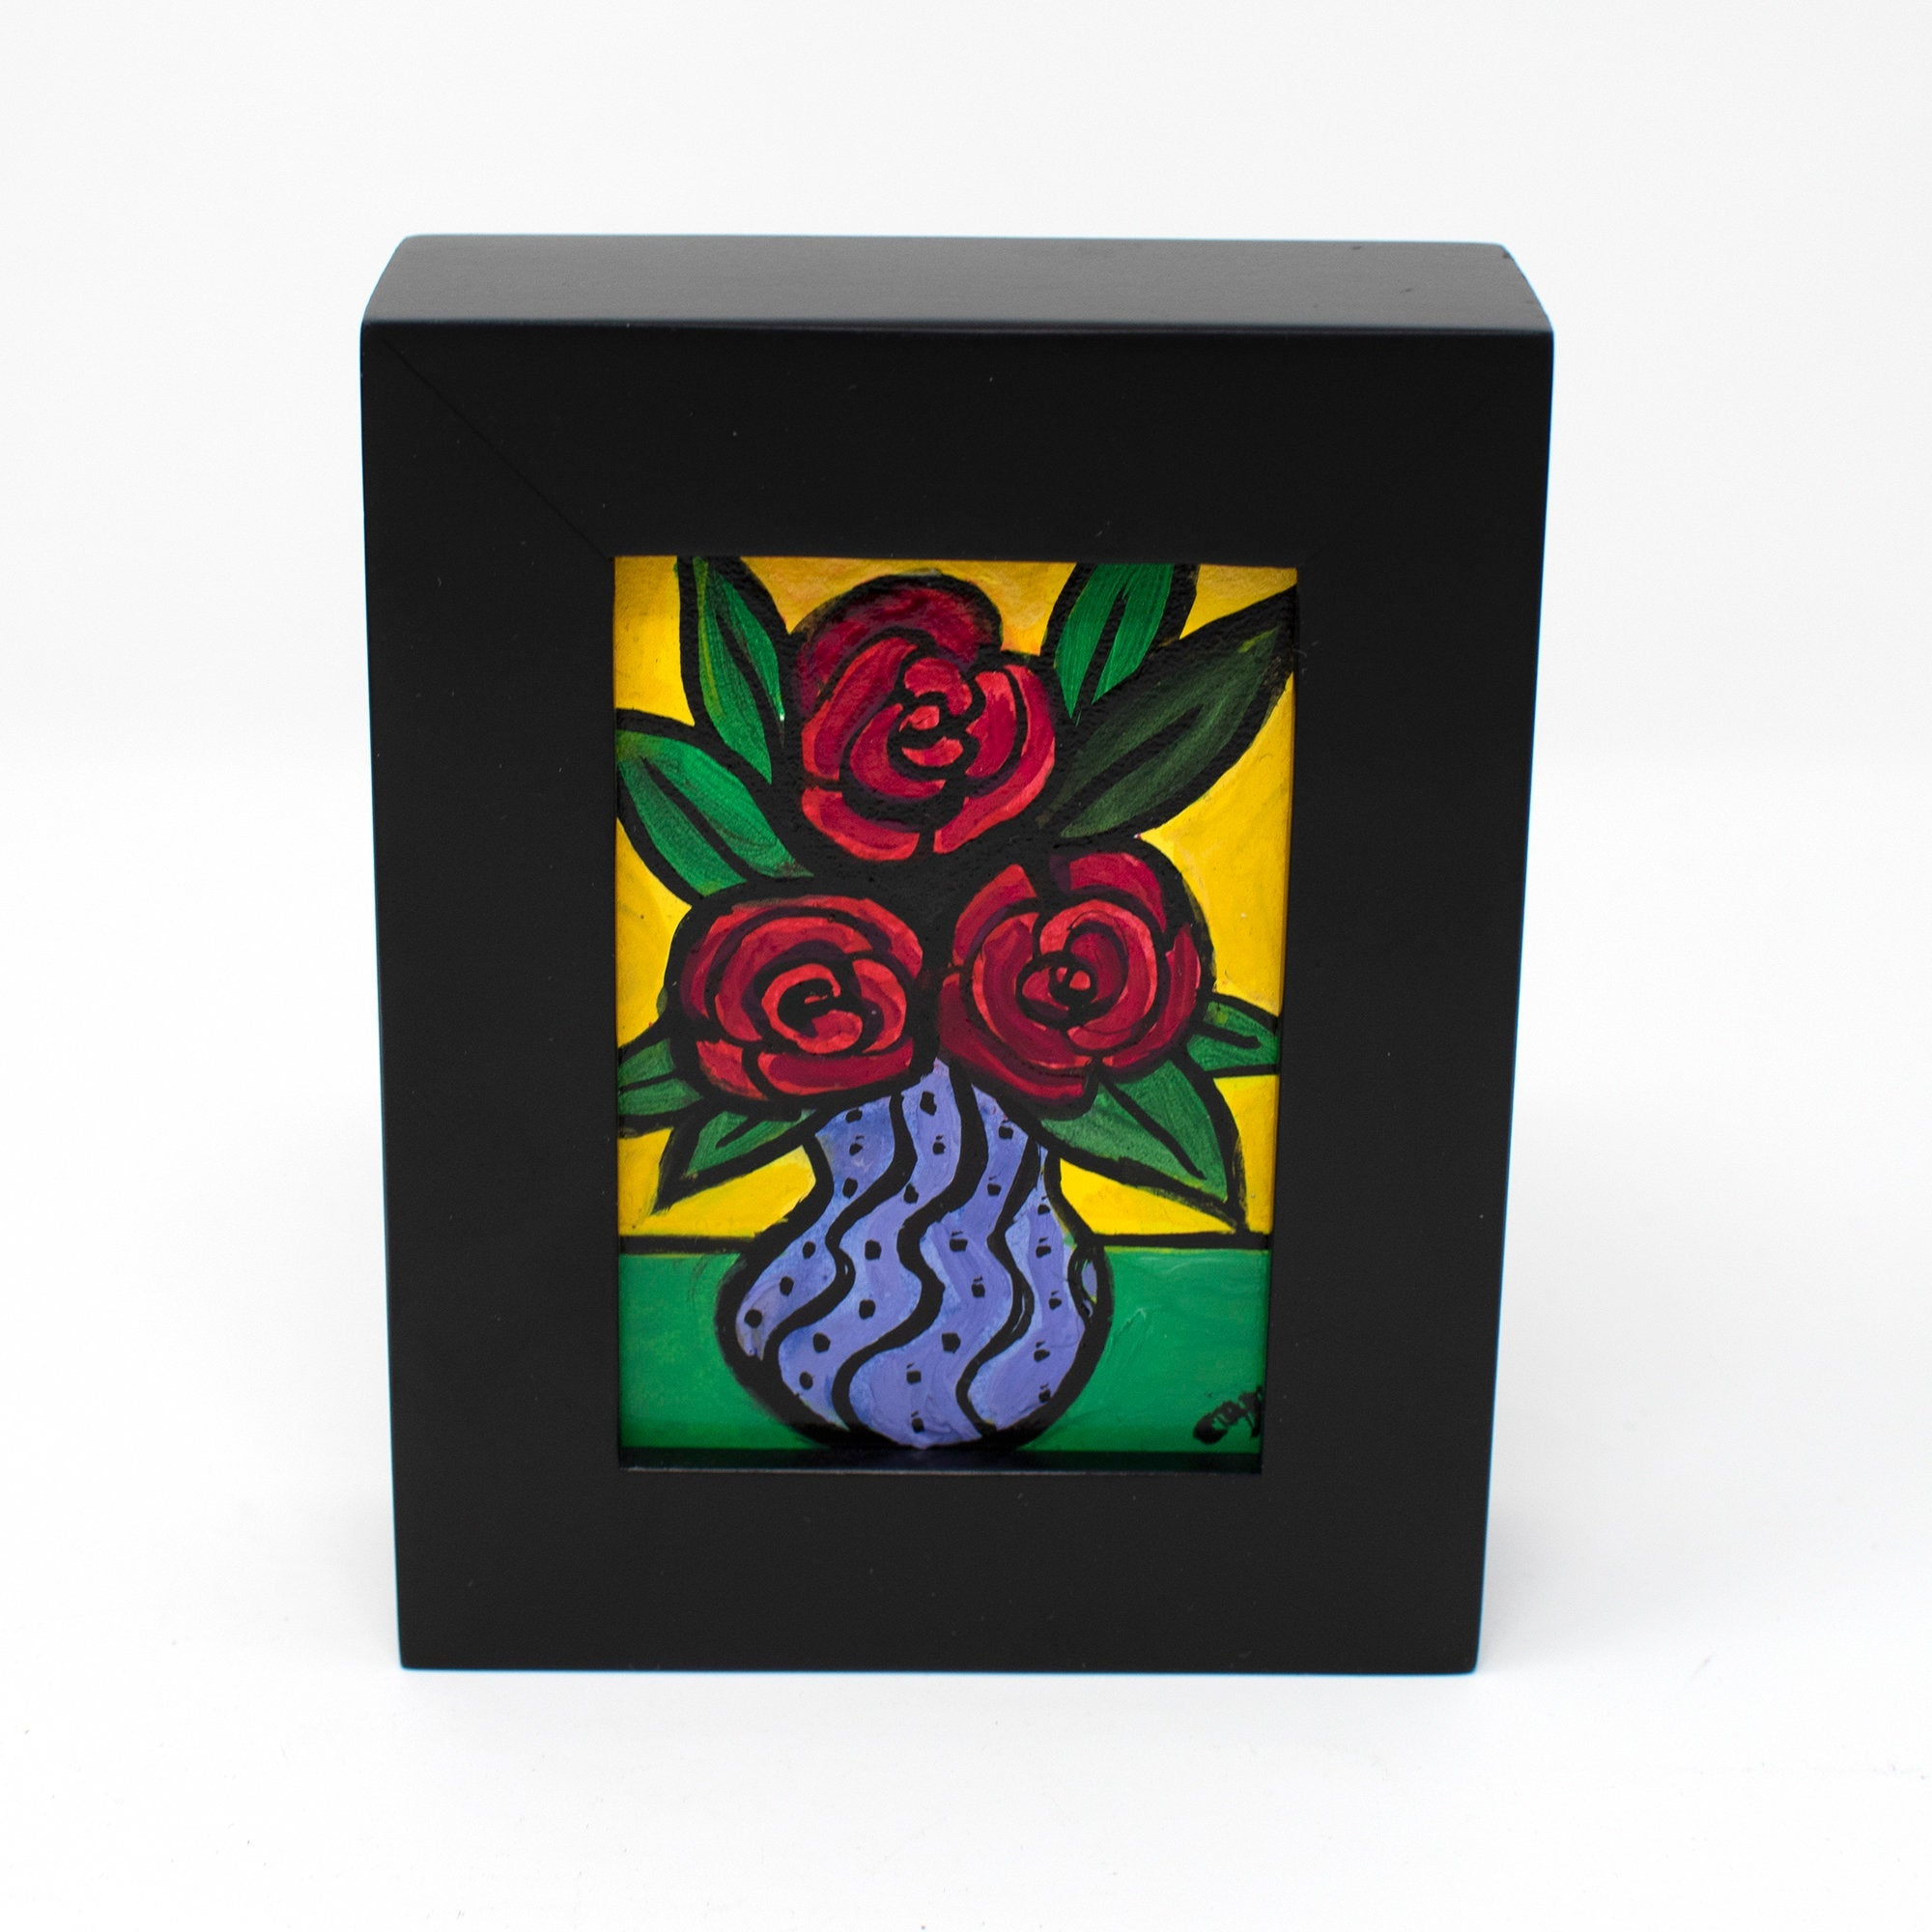 Miniature Red Rose Painting - Framed Floral Painting for Desk, Bookshelf, Wall